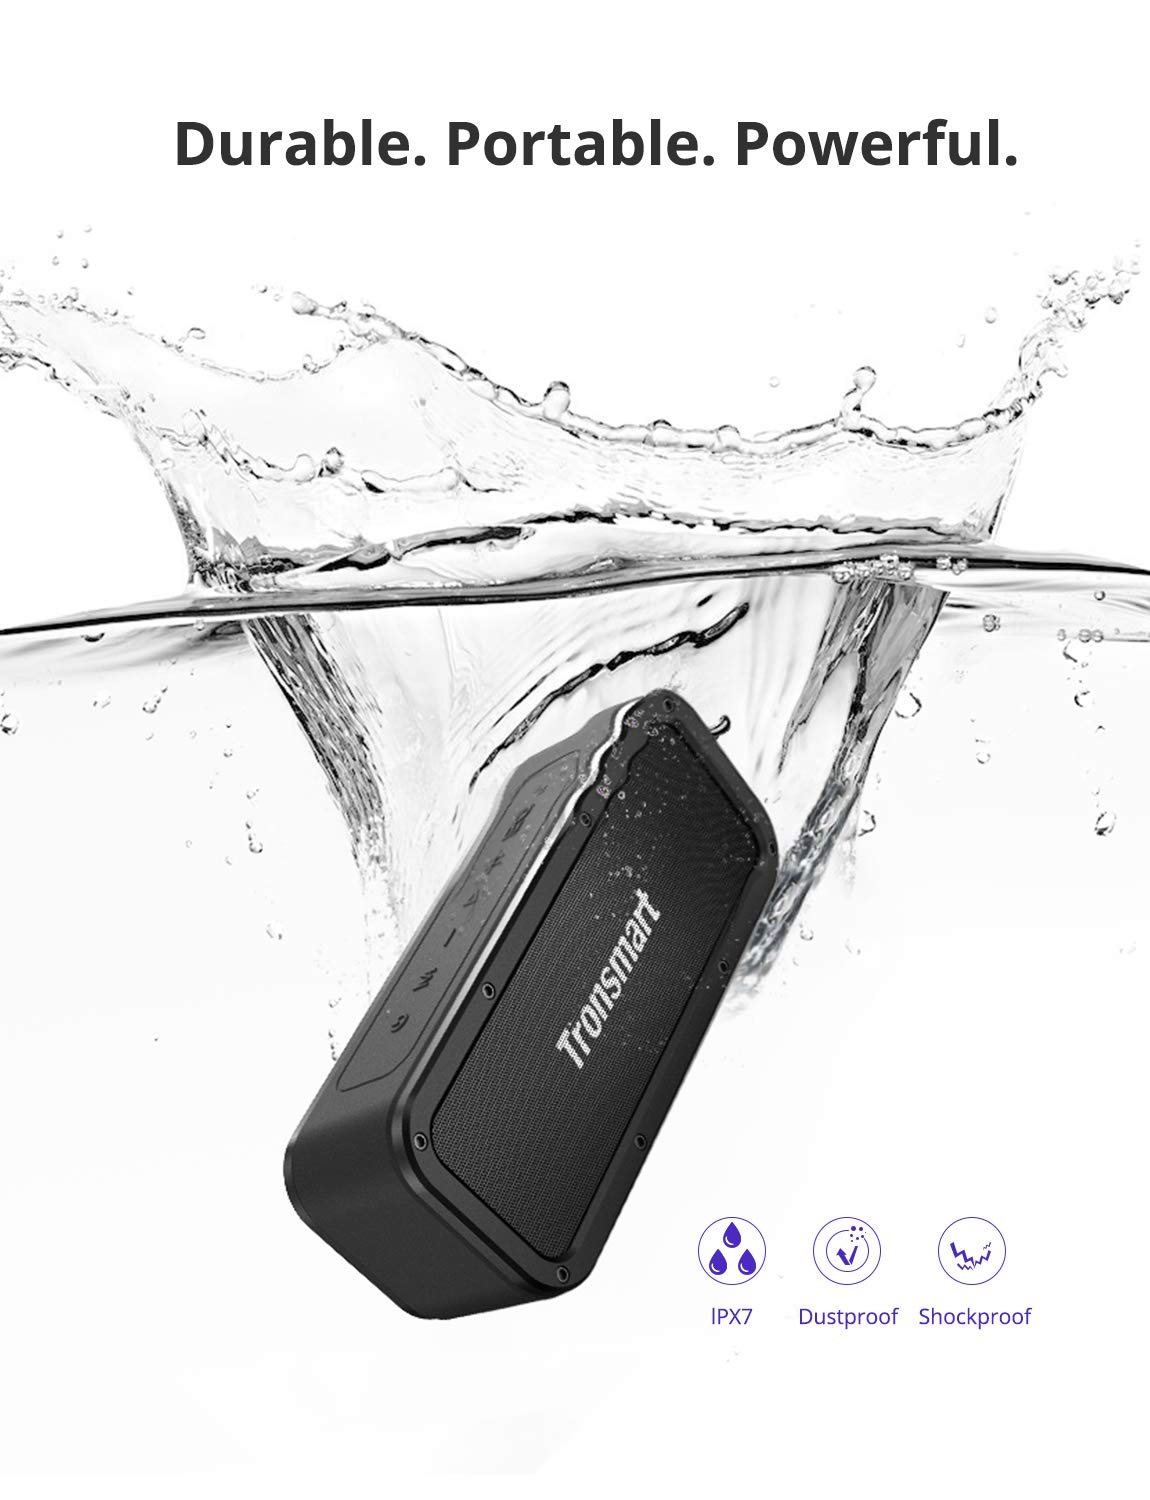 Portable Bluetooth Speakers, Tronsmart Force SoundPulse 40W IPX7 Waterproof Bluetooth 4.2 Wireless Speakers with 15-Hour Playtime, TWS, Dual-Driver with Built-in Mic, NFC, Deep Bass (Force) by Tronsmart (Image #2)